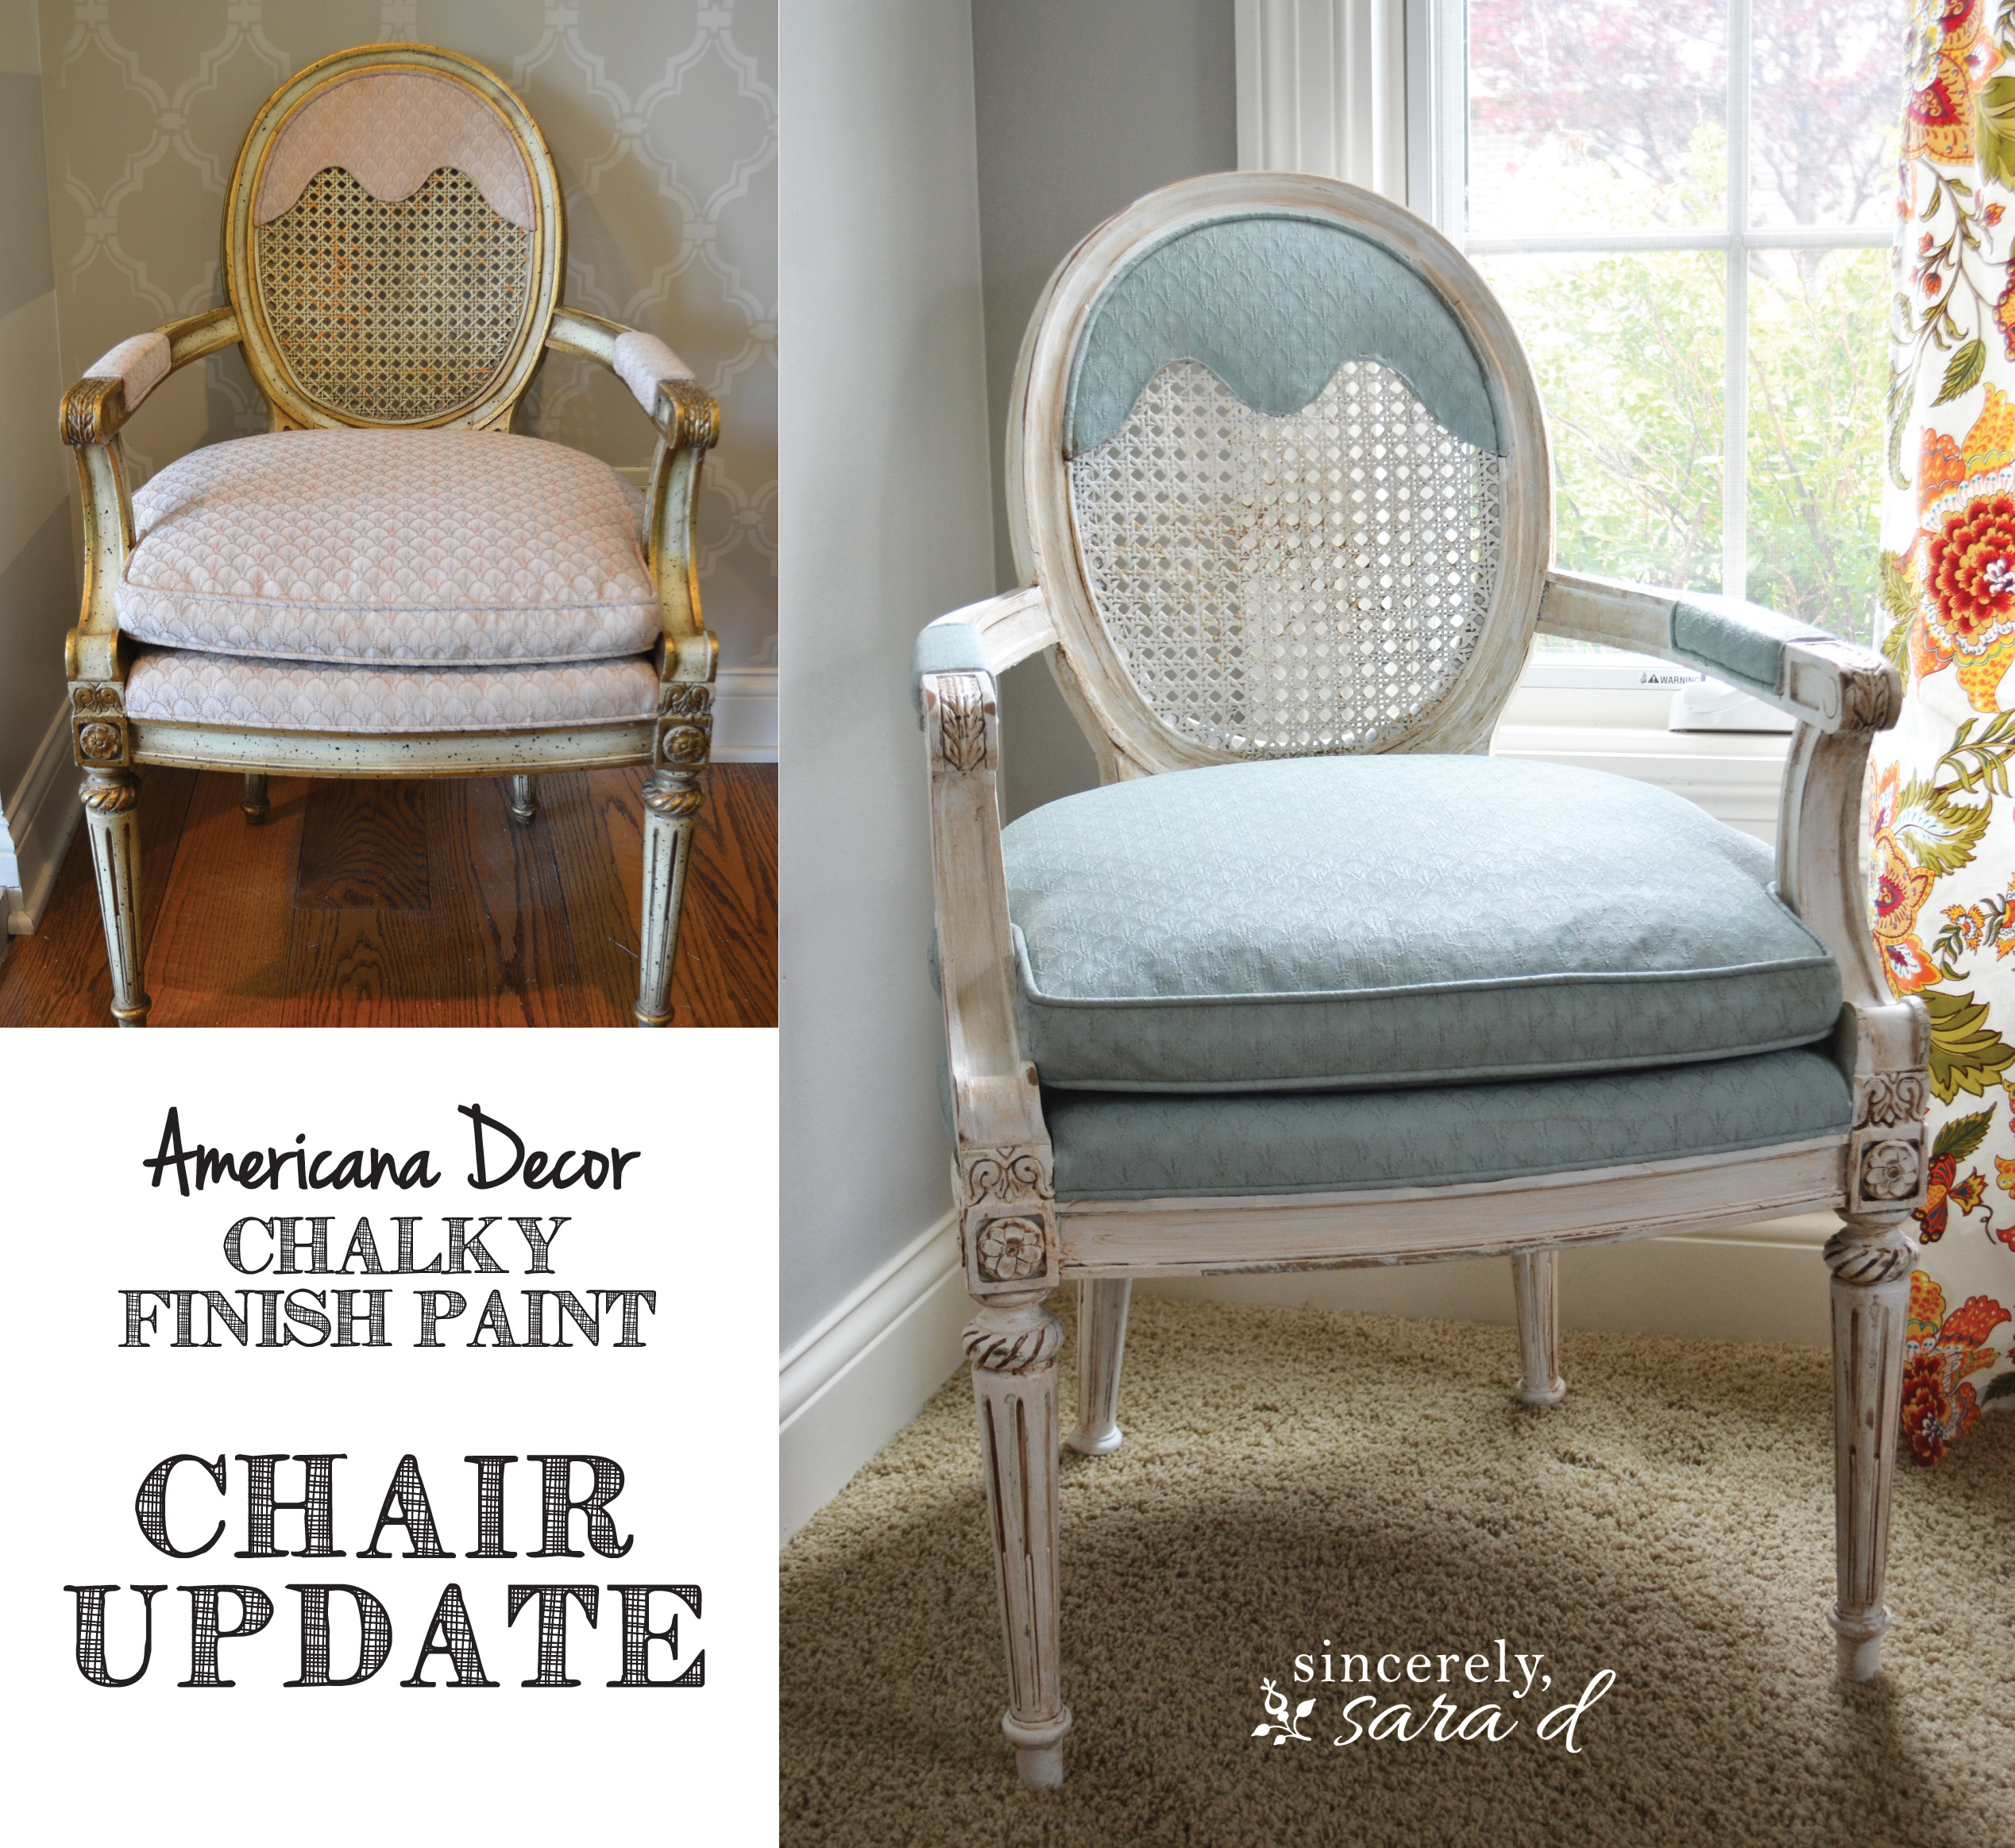 Painted fabric chairs - Painted Upholstered Chair Using Chalky Finish Paint